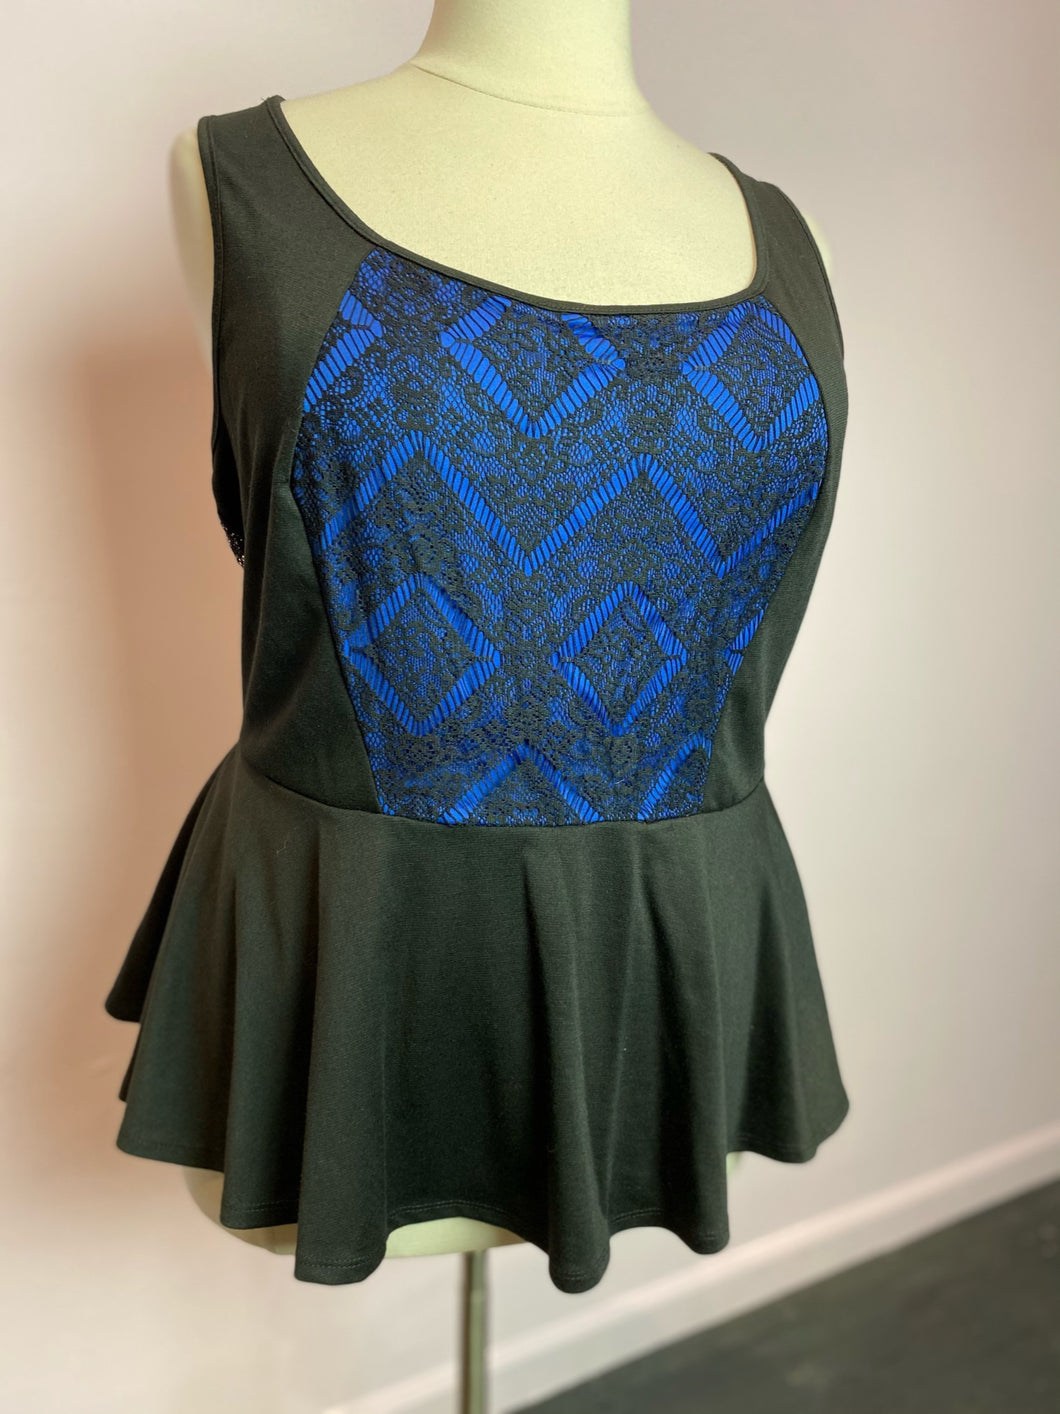 Black and Blue Peplum with Lace Overlay Forever 21 Top, Size 3X